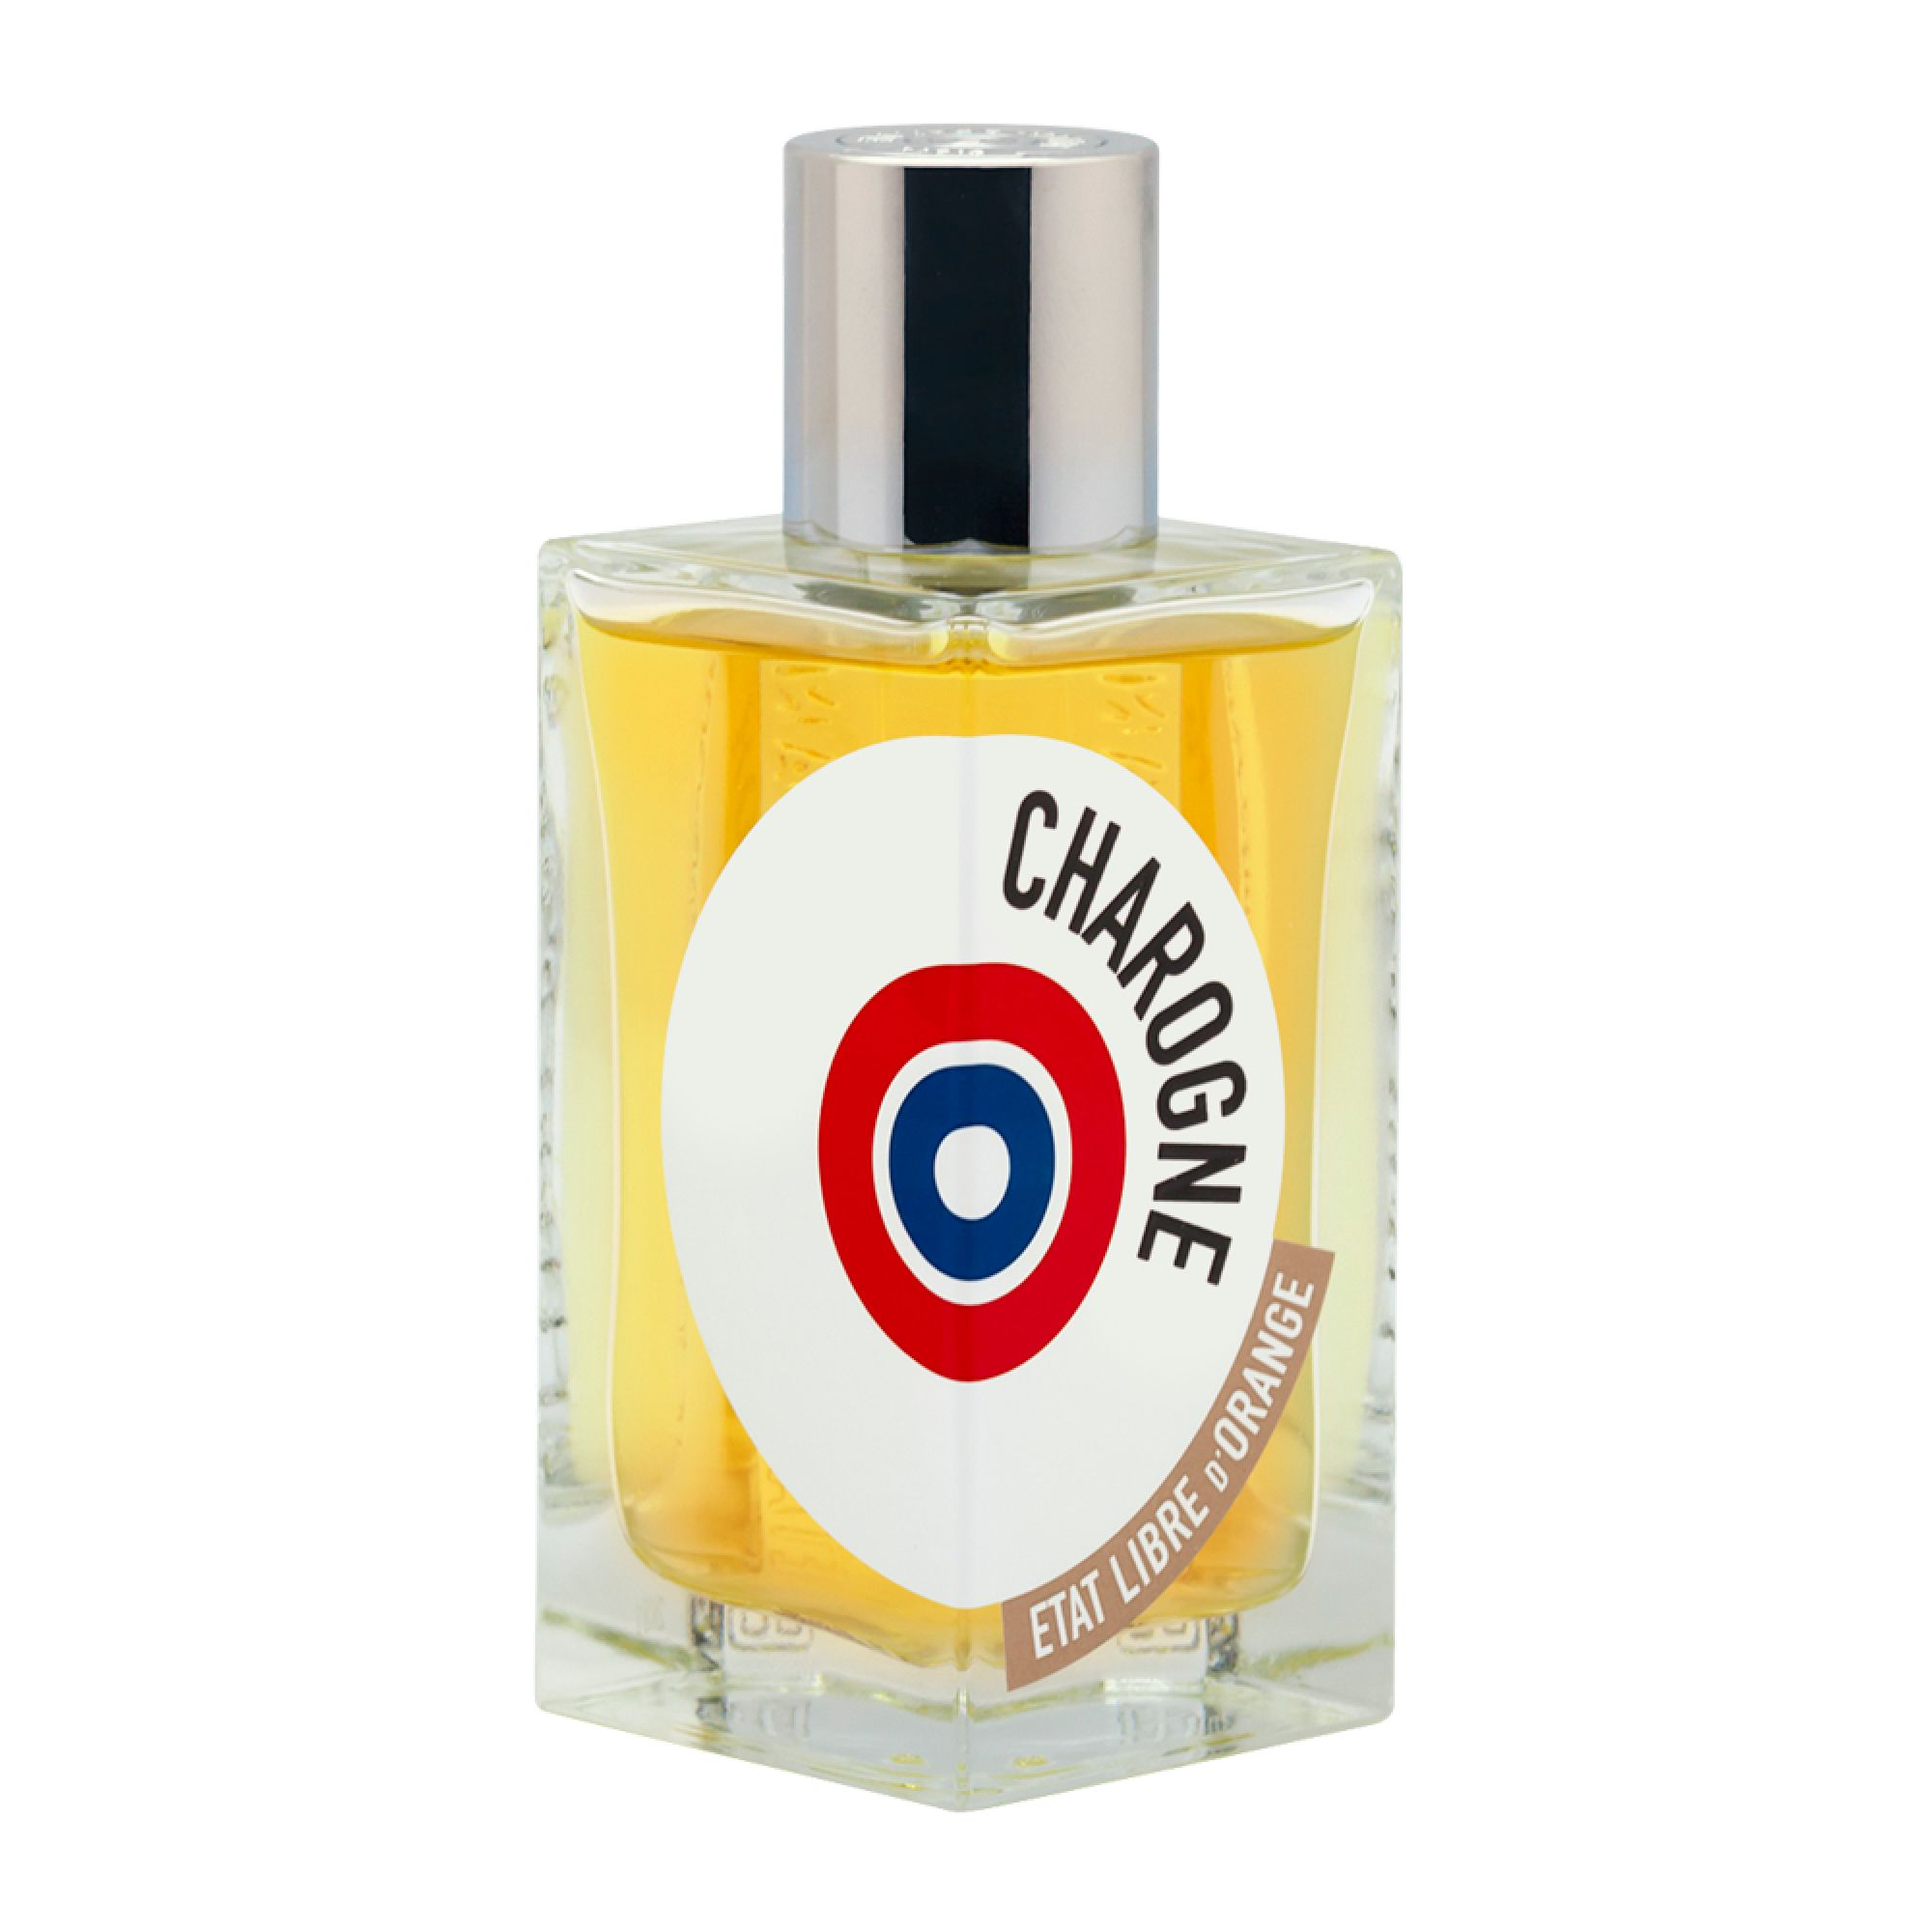 Etat Libre d'Orange Etat Libre d'Orange Charogne Eau de Parfum 50ml